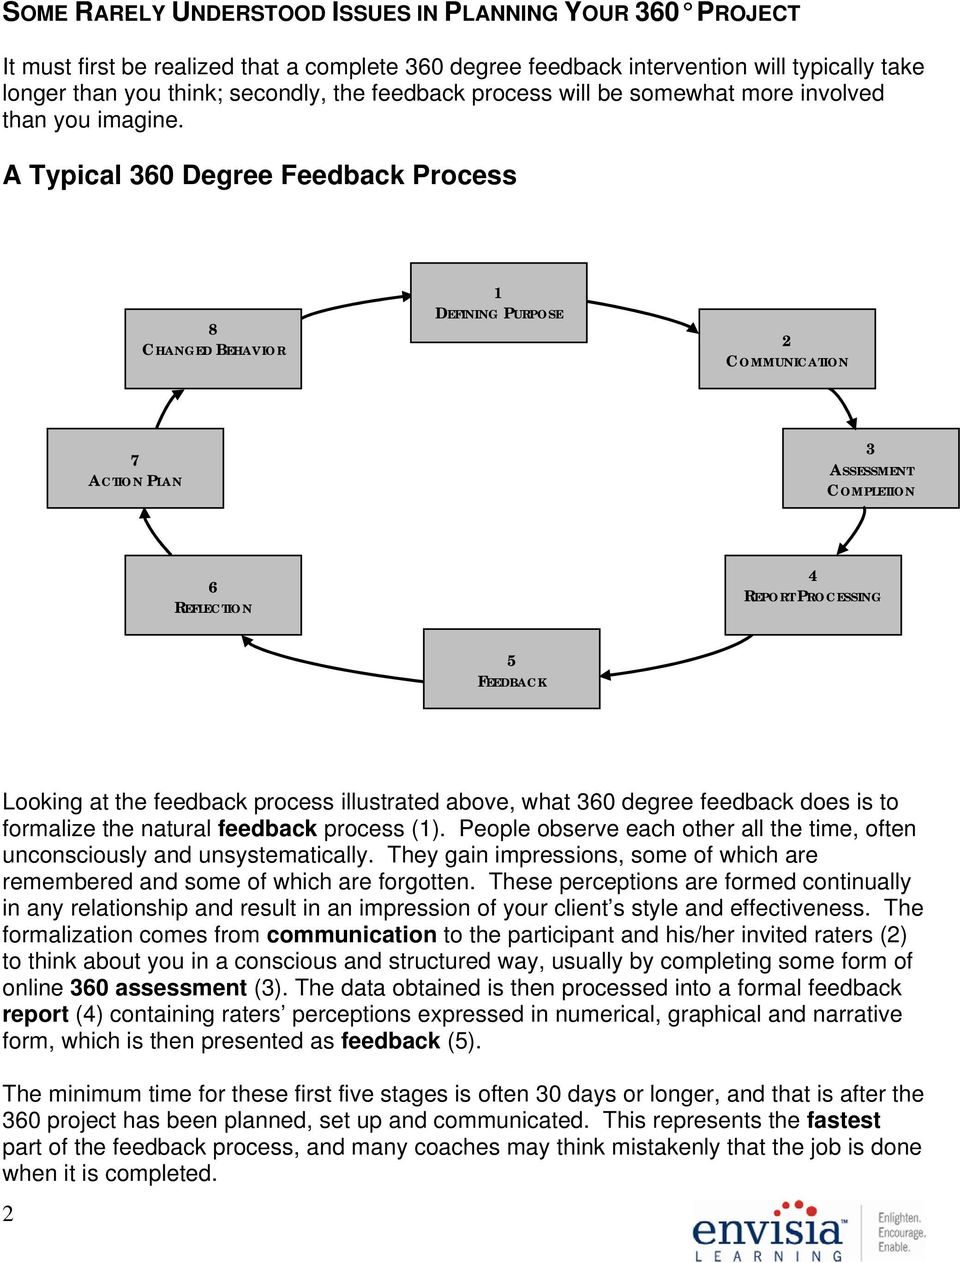 A Typical 360 Degree Feedback Process 8 CHANGED BEHAVIOR 1 DEFINING PURPOSE 2 COMMUNICATION 7 ACTION PLAN 3 ASSESSMENT COMPLETION 6 REFLECTION 4 REPORT PROCESSING 5 FEEDBACK Looking at the feedback